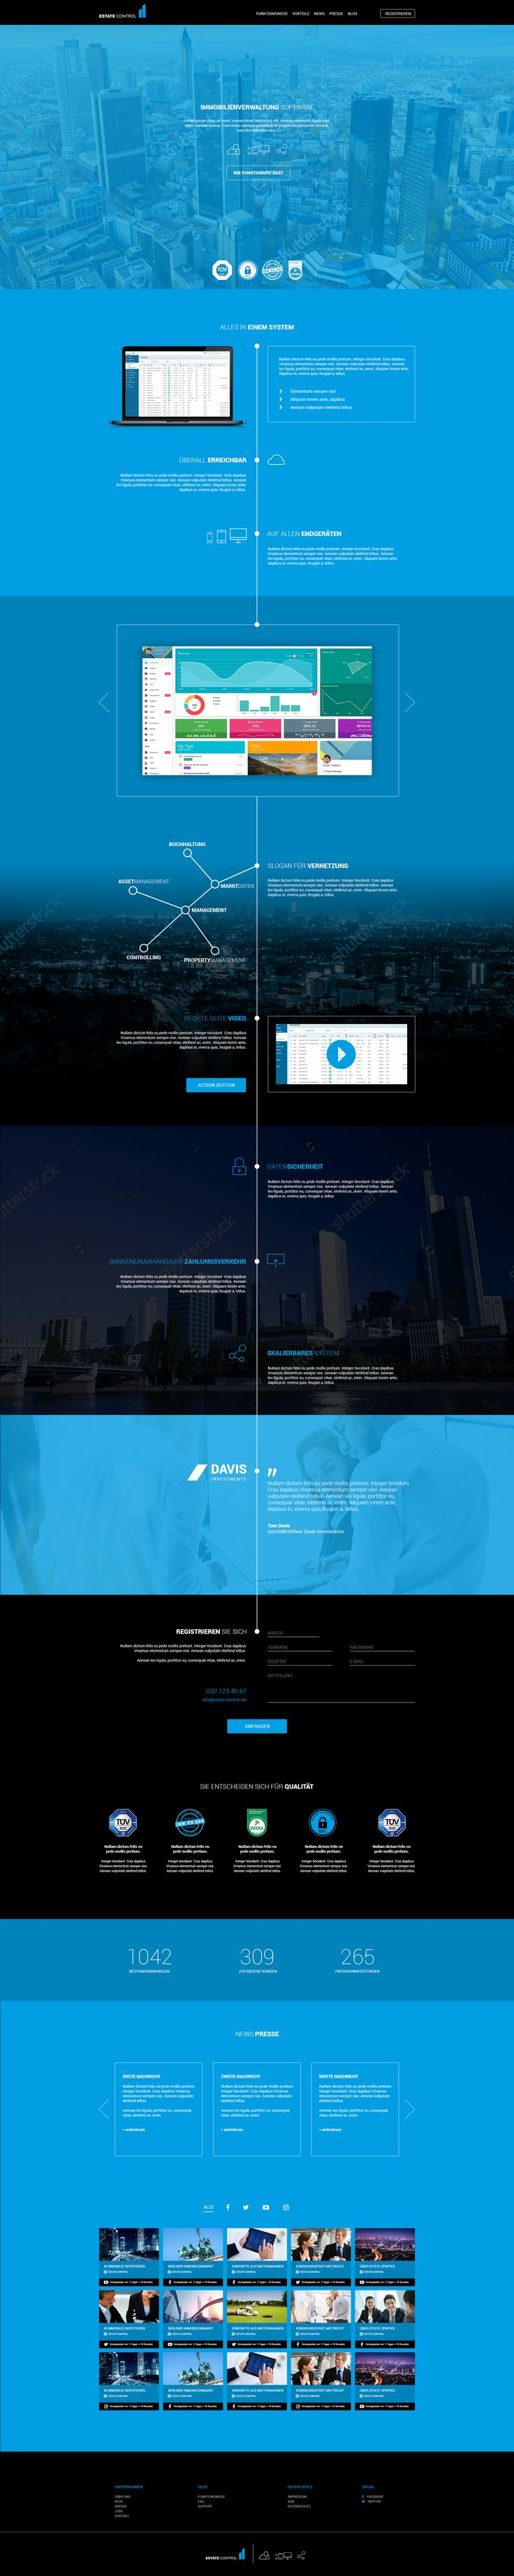 Webdesign for Real Estate Management-Software #webdesign #real estate #properties #property #black #blue #finance #flat